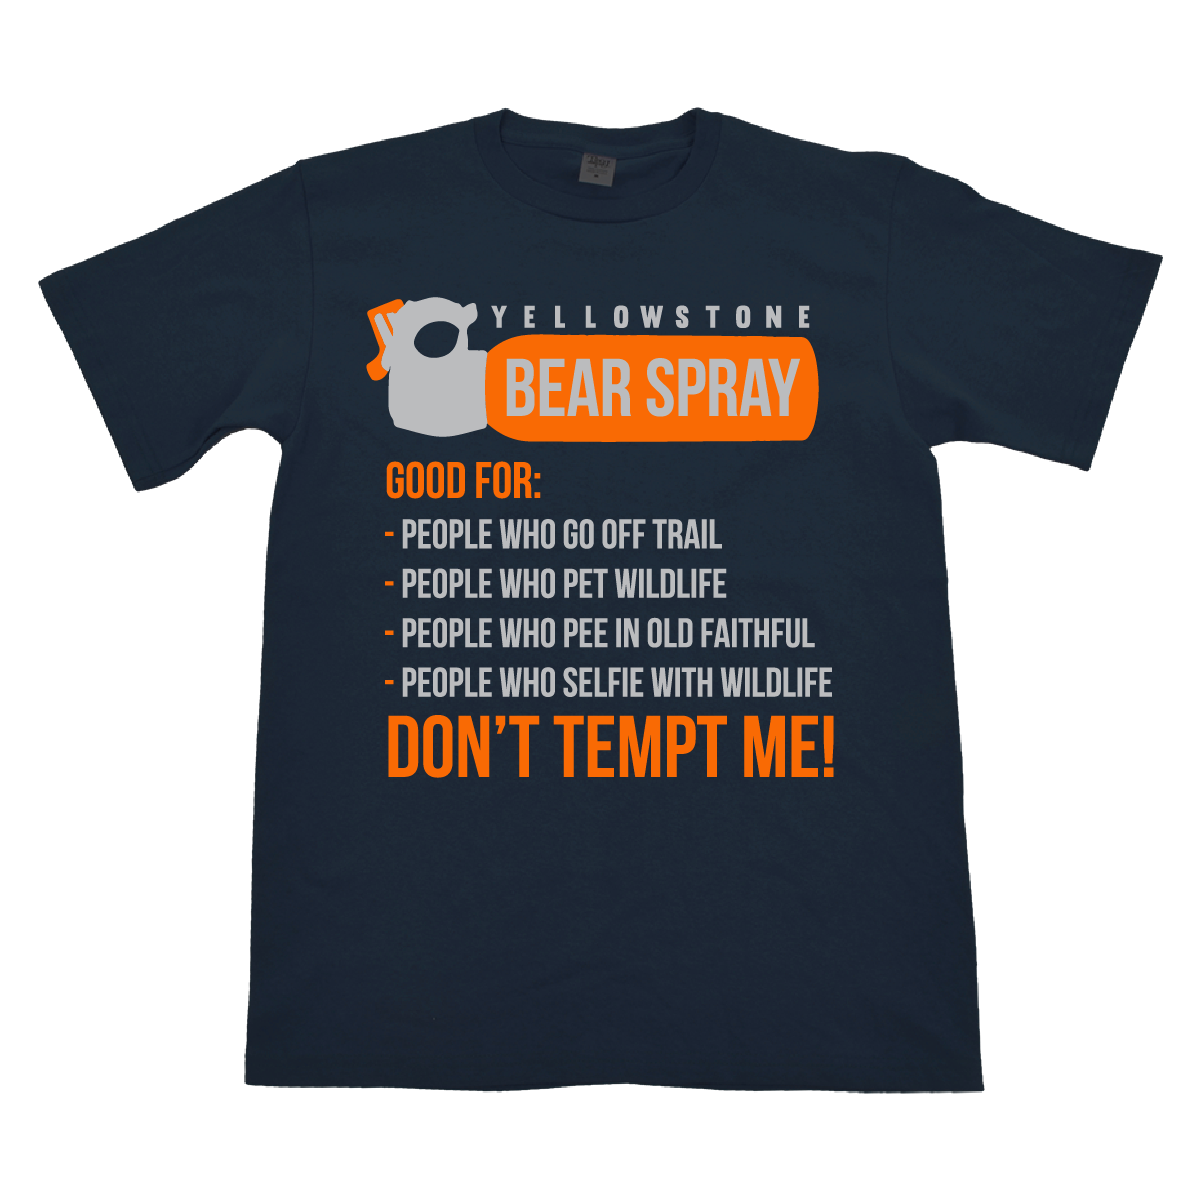 BEAR SPRAY TEE SHIRT